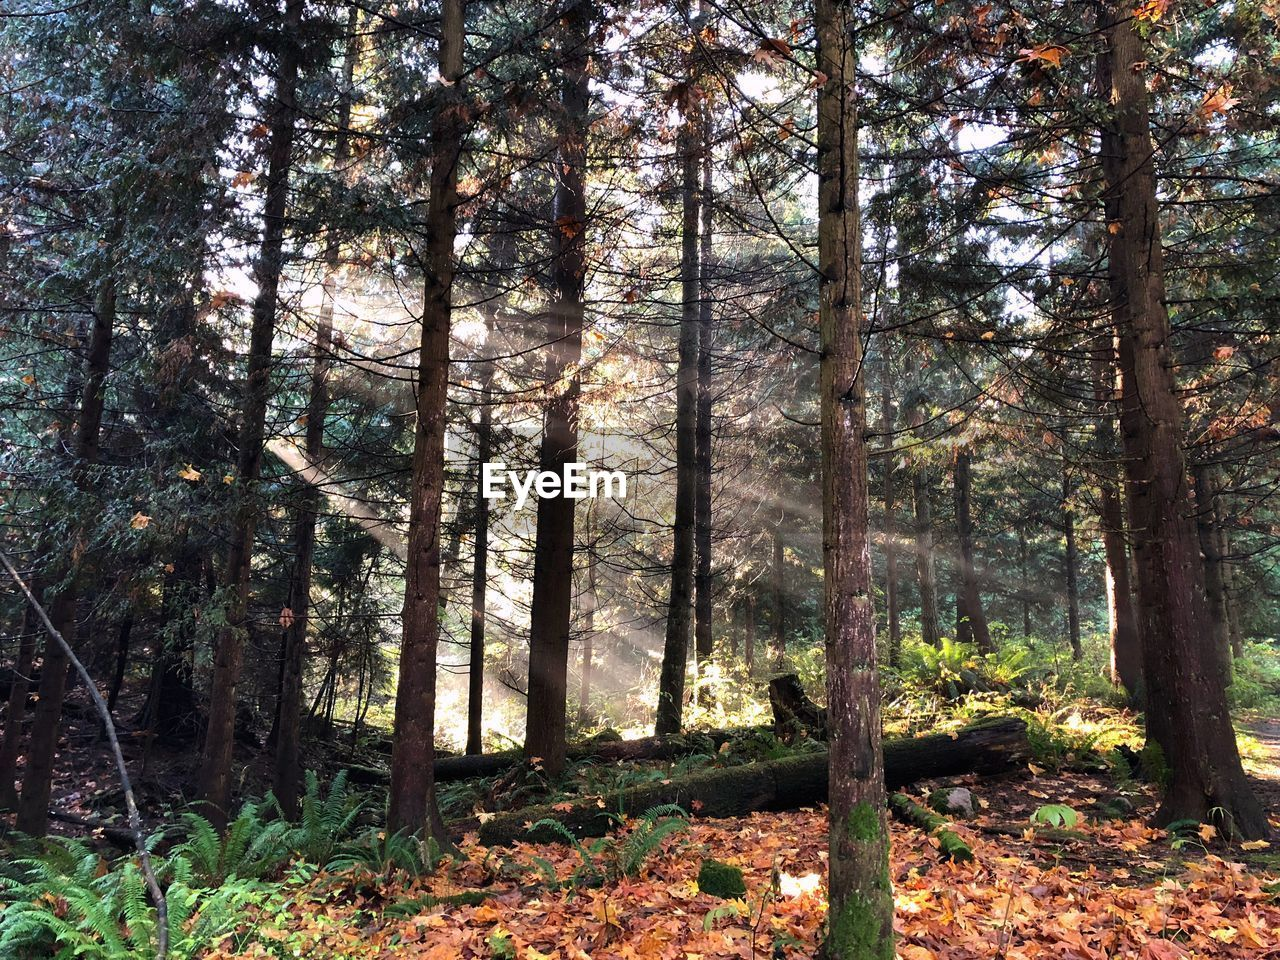 tree, forest, plant, land, woodland, tree trunk, trunk, nature, tranquility, day, growth, beauty in nature, no people, sunlight, autumn, tranquil scene, non-urban scene, outdoors, scenics - nature, plant part